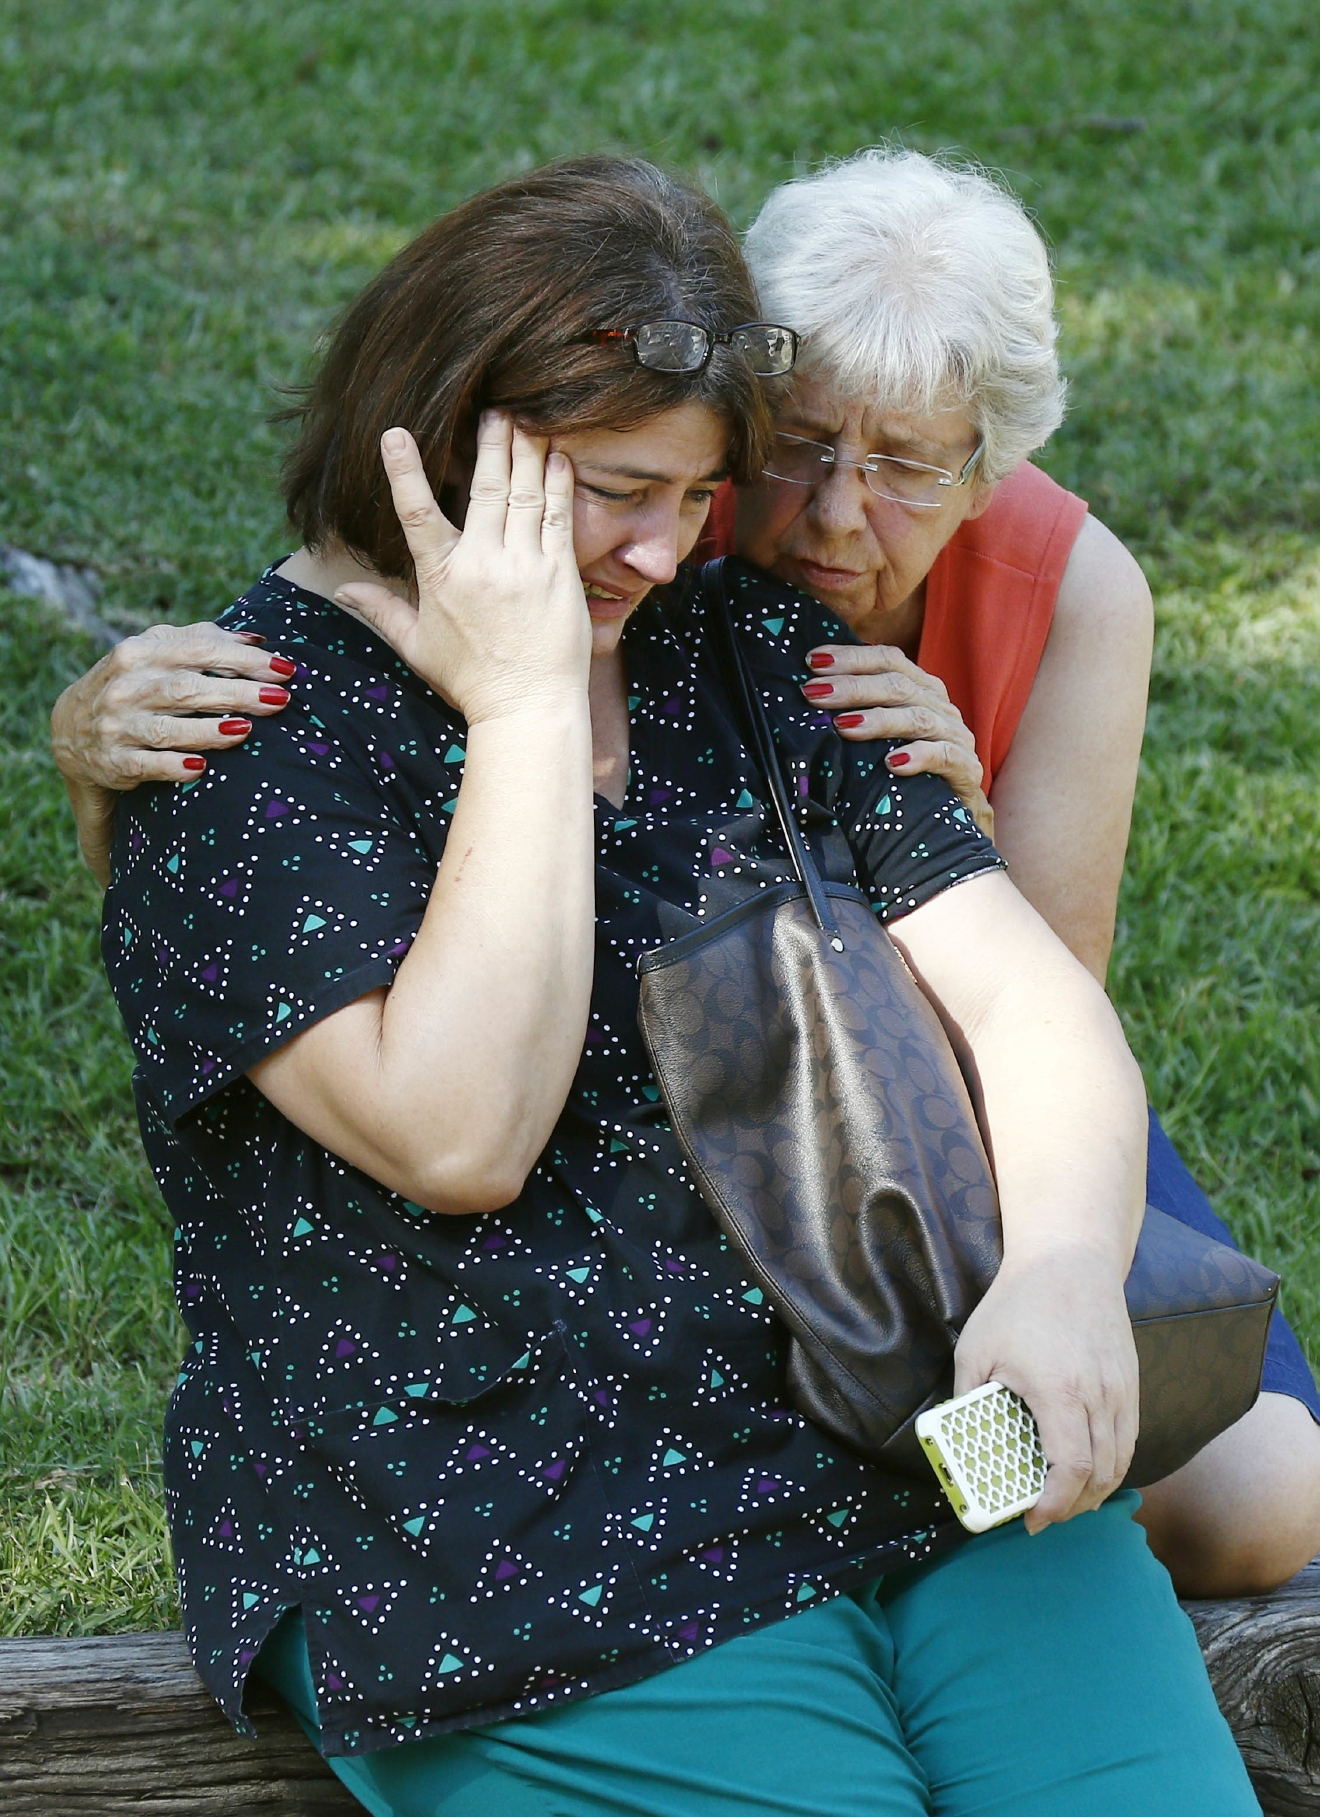 Jonell Payton, right, comforts Lisa Dew, outside the Durant, Miss., home of two slain Catholic nuns, Thursday, Aug. 25, 2016.  (AP Photo/Rogelio V. Solis)